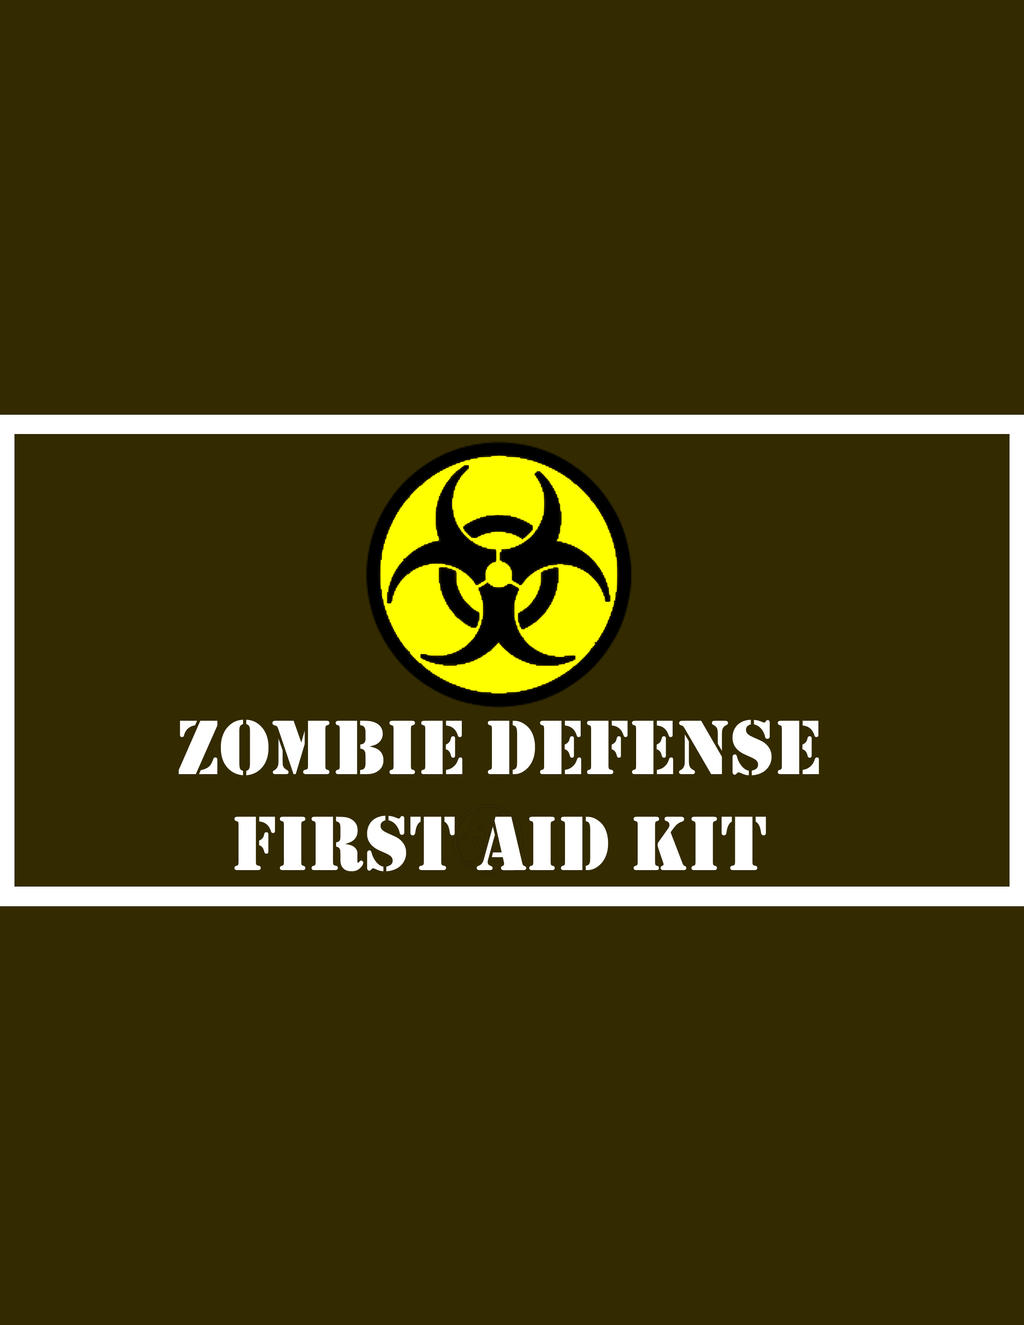 Zombie Survival Kit Part 1: First Aid Kit by KerriChan on ...